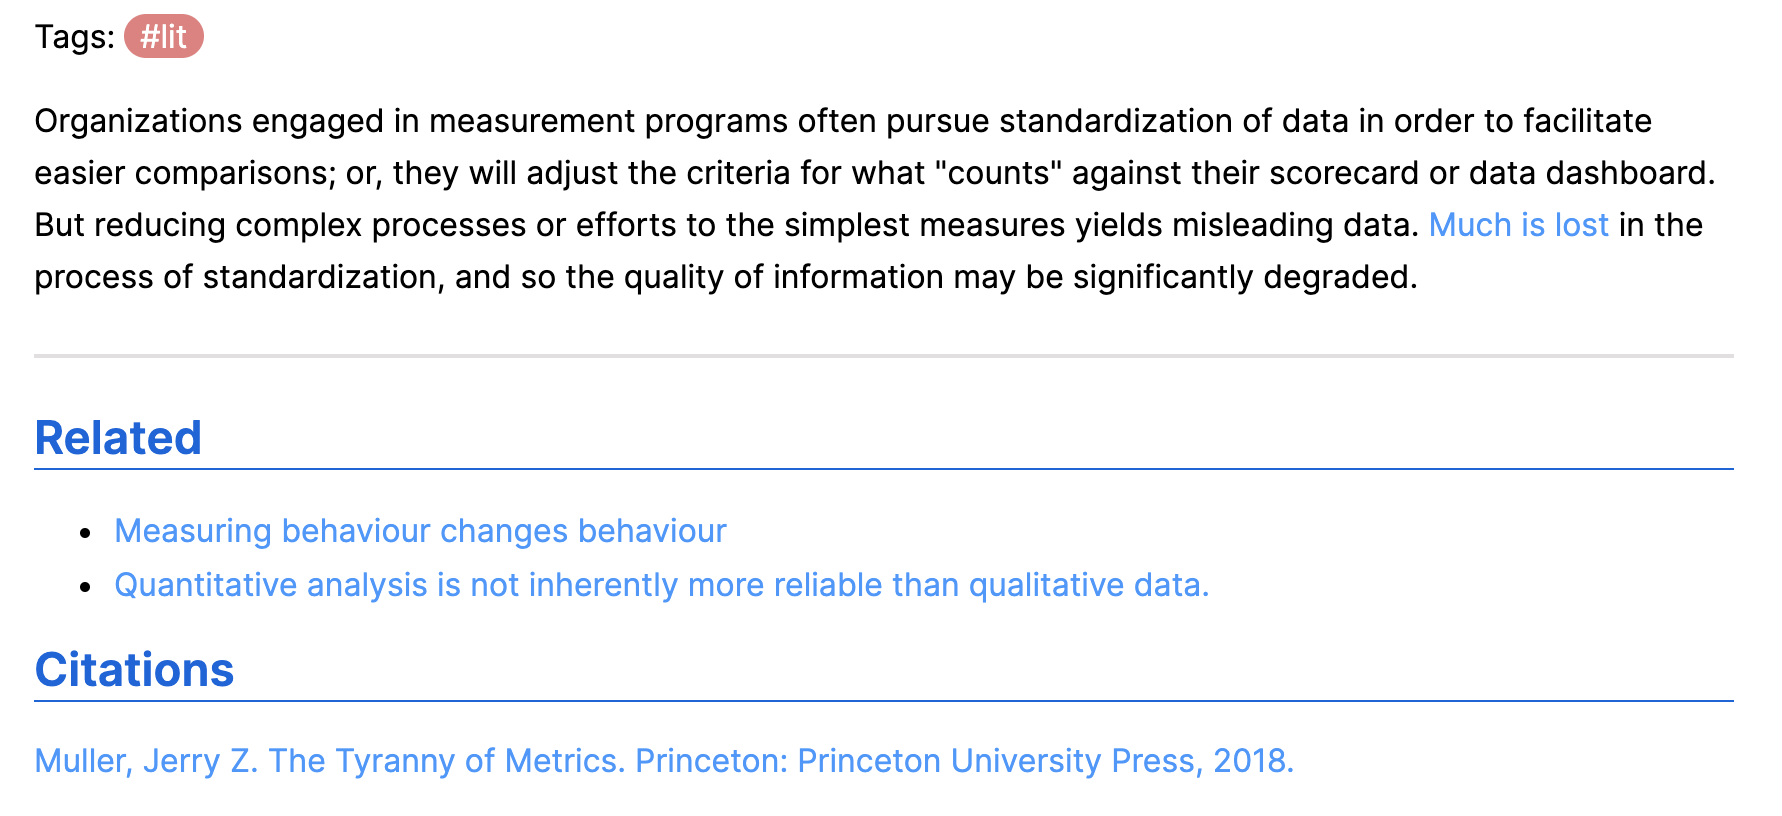 """A literature note from Muller's The Tyranny of Metrics . I try to make links in context when I can. Sometimes, I'll come back and refactor """"related"""" links to clarify the relationship better."""